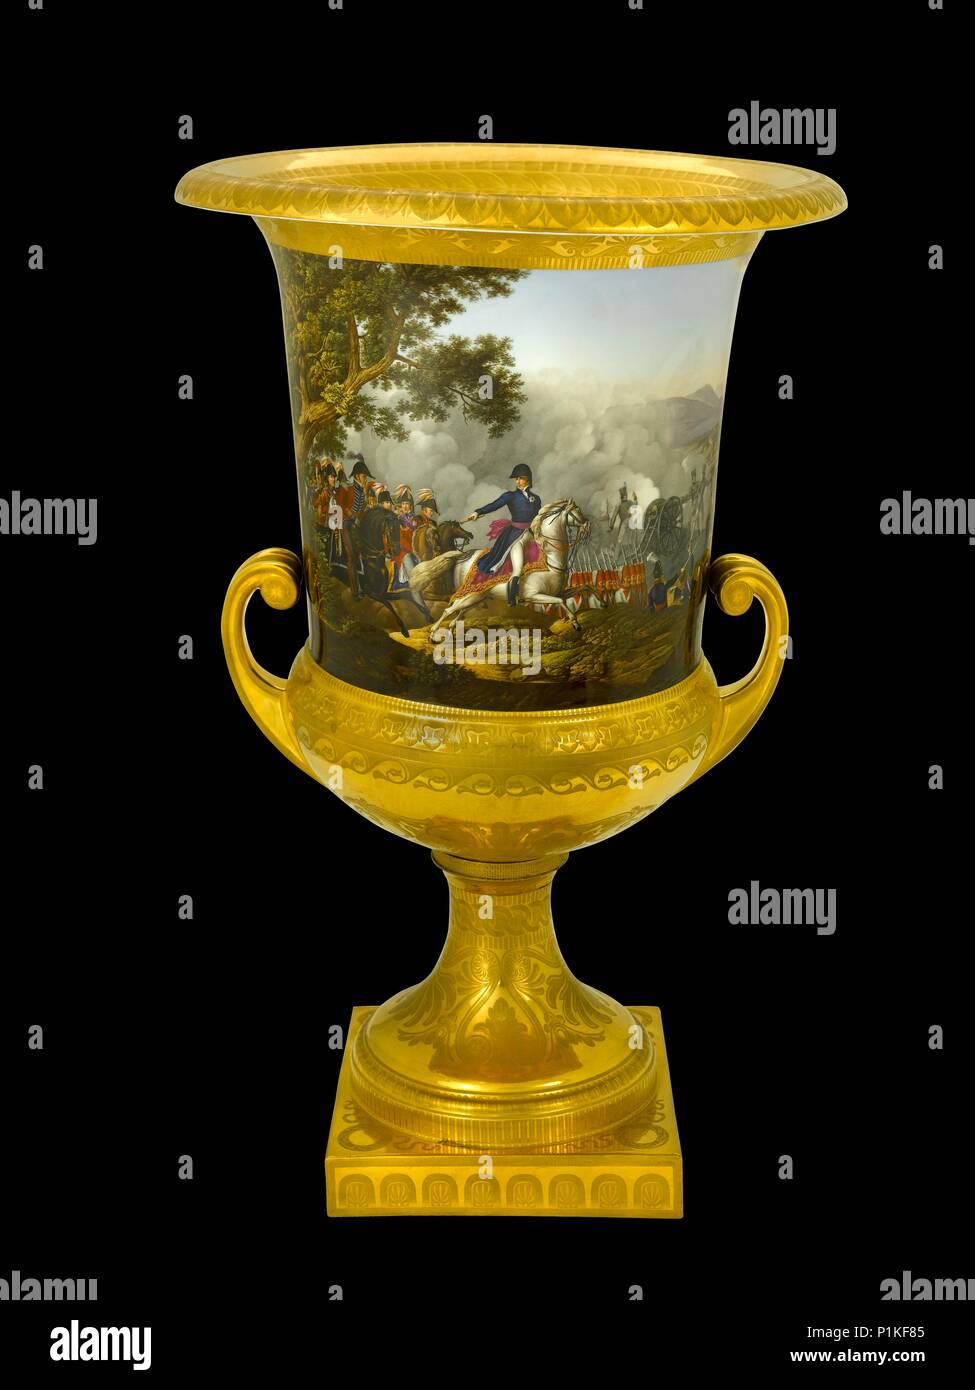 Urn showing the Battle of Vitoria, Spain, 1813 (1817-1819). Item in Apsley House, London, from the Duke of Wellington's Prussian Service, made in Berl - Stock Image